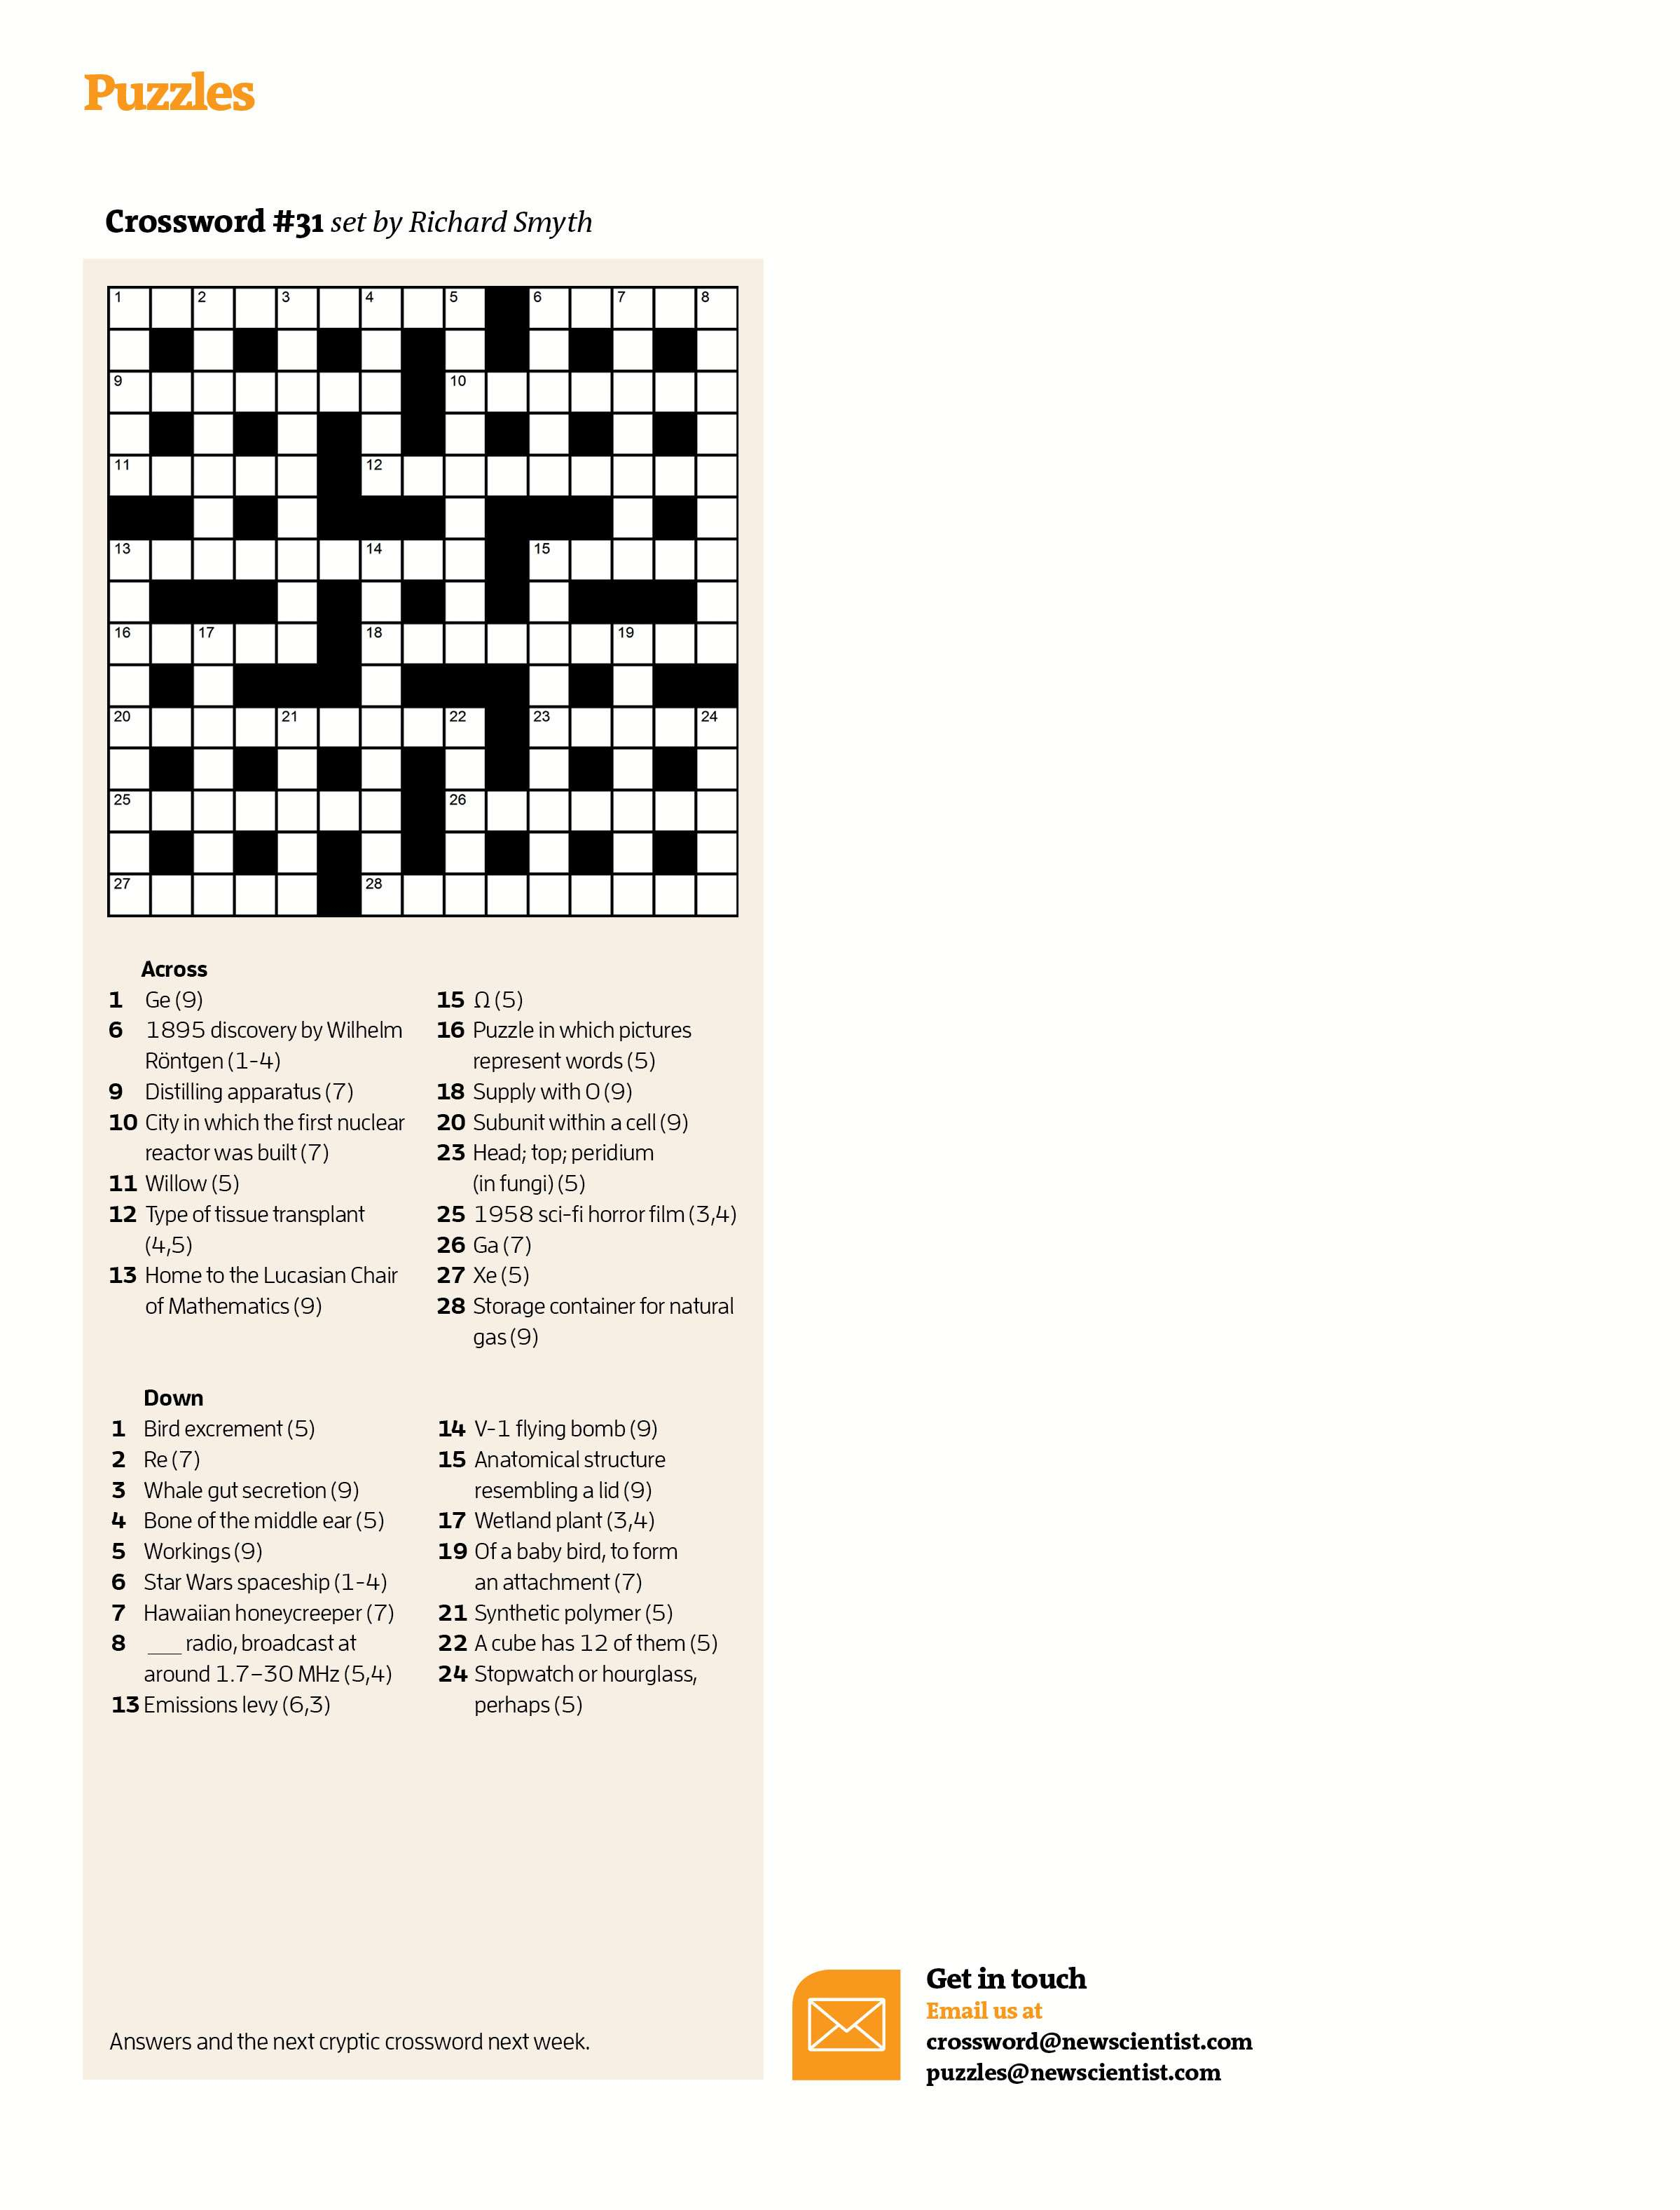 Crossword #31 | New Scientist - Daily Quick Crossword Printable Version